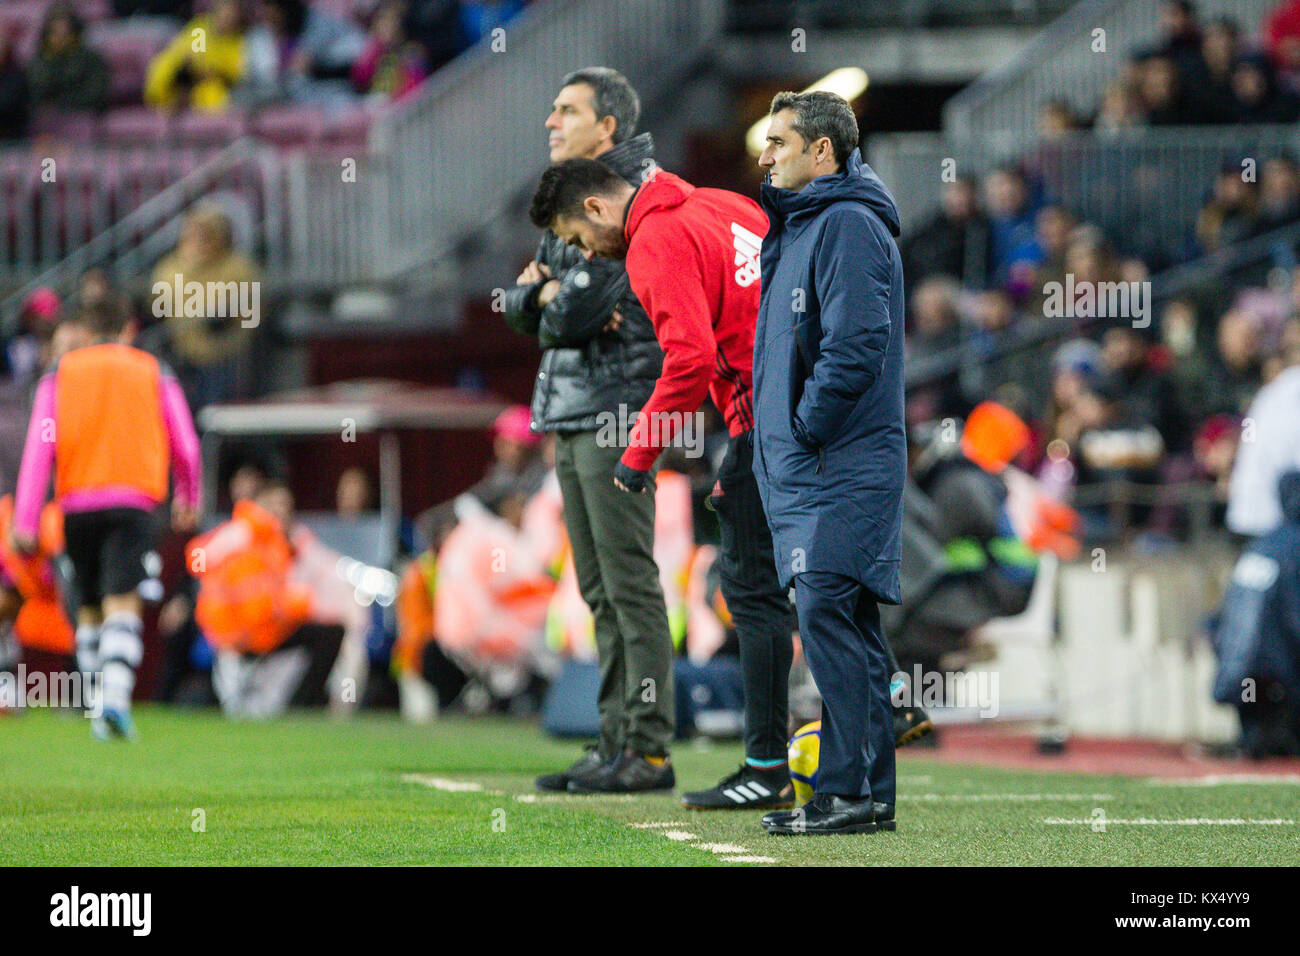 Barcelona, Spain. 07th Jan, 2018. <bc< during the match between FC Barcelona against Levante UD, for the round - Stock Image